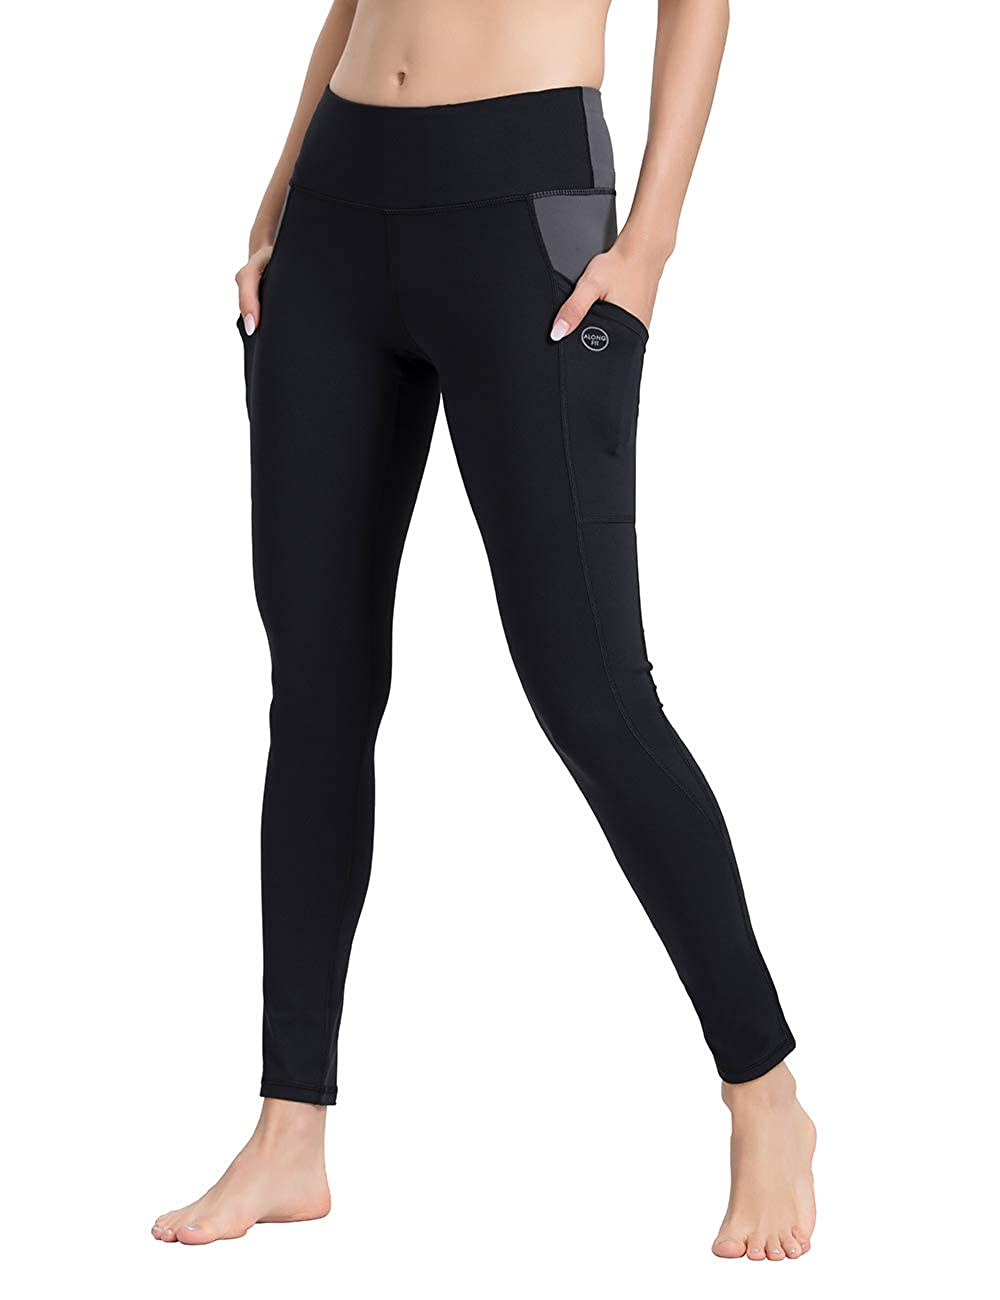 579558161ee41 Amazon.com: ALONG FIT Yoga Pants for Women with Phone Pockets, Compression Workout  Leggings Tummy Control Yoga Shorts Capris: Clothing